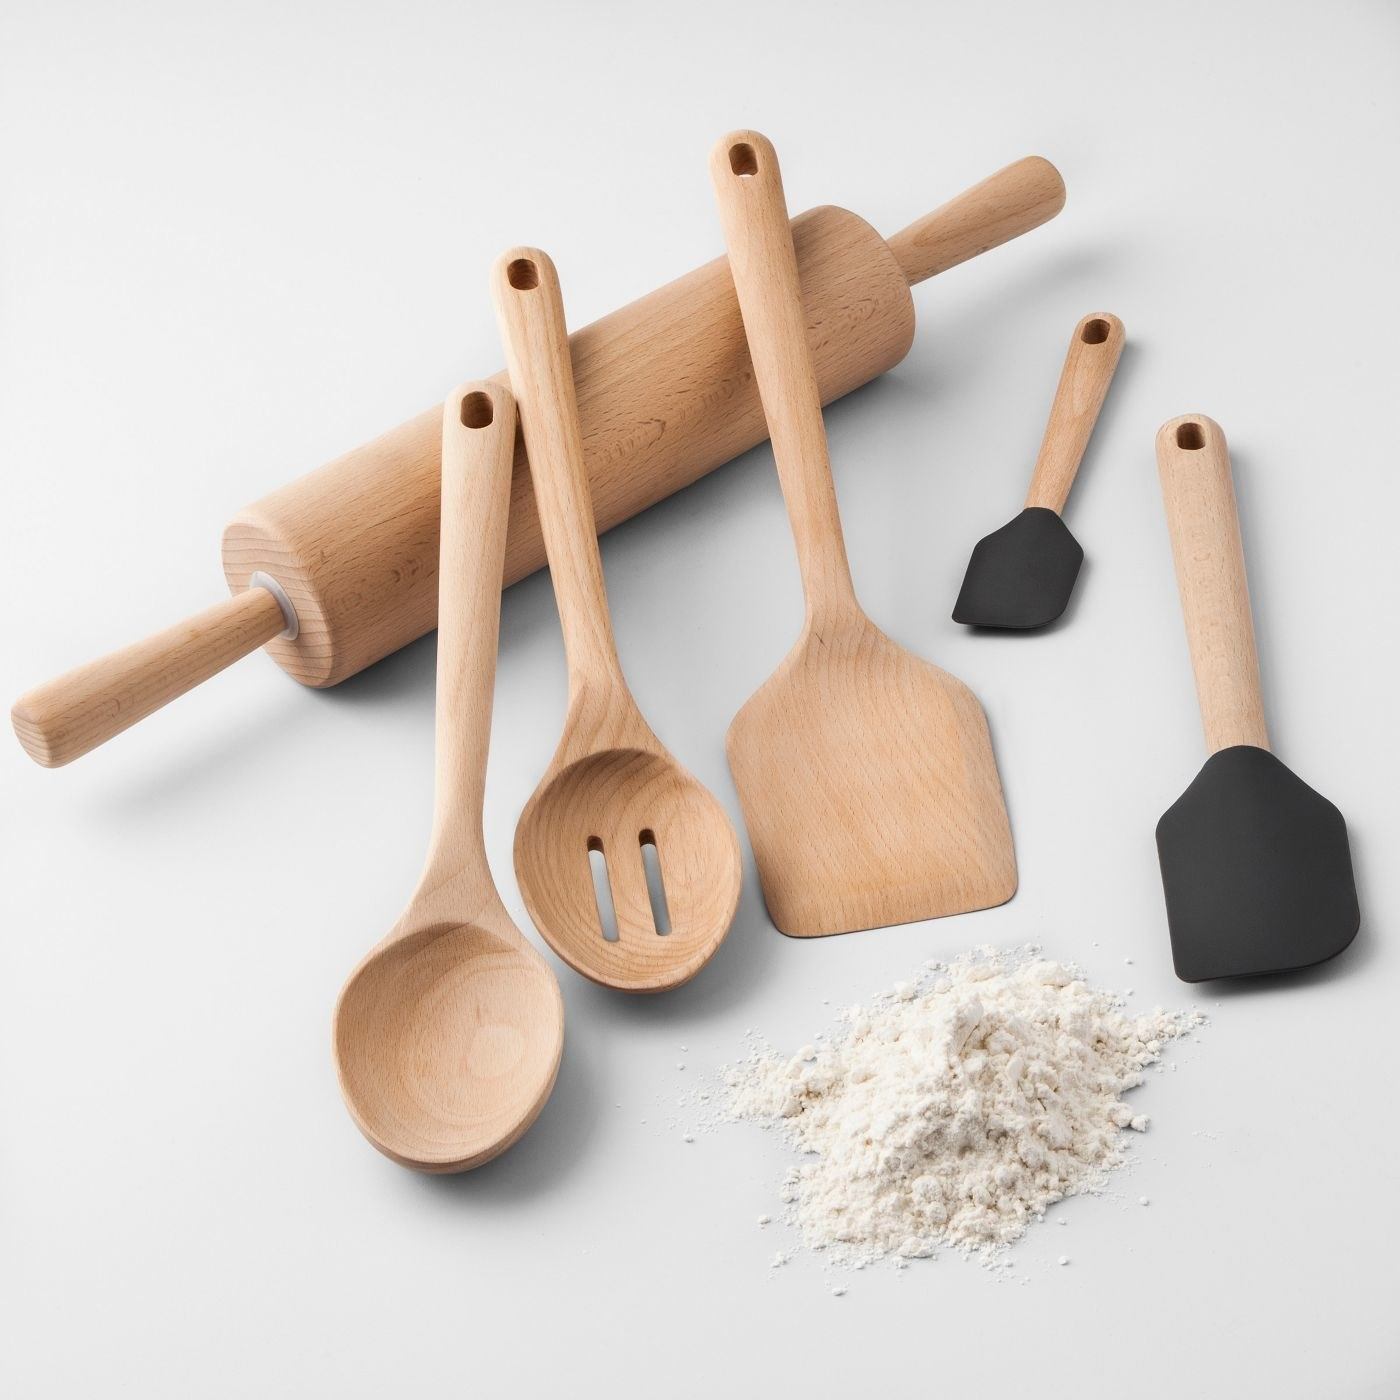 A beechwood set including a rolling pin